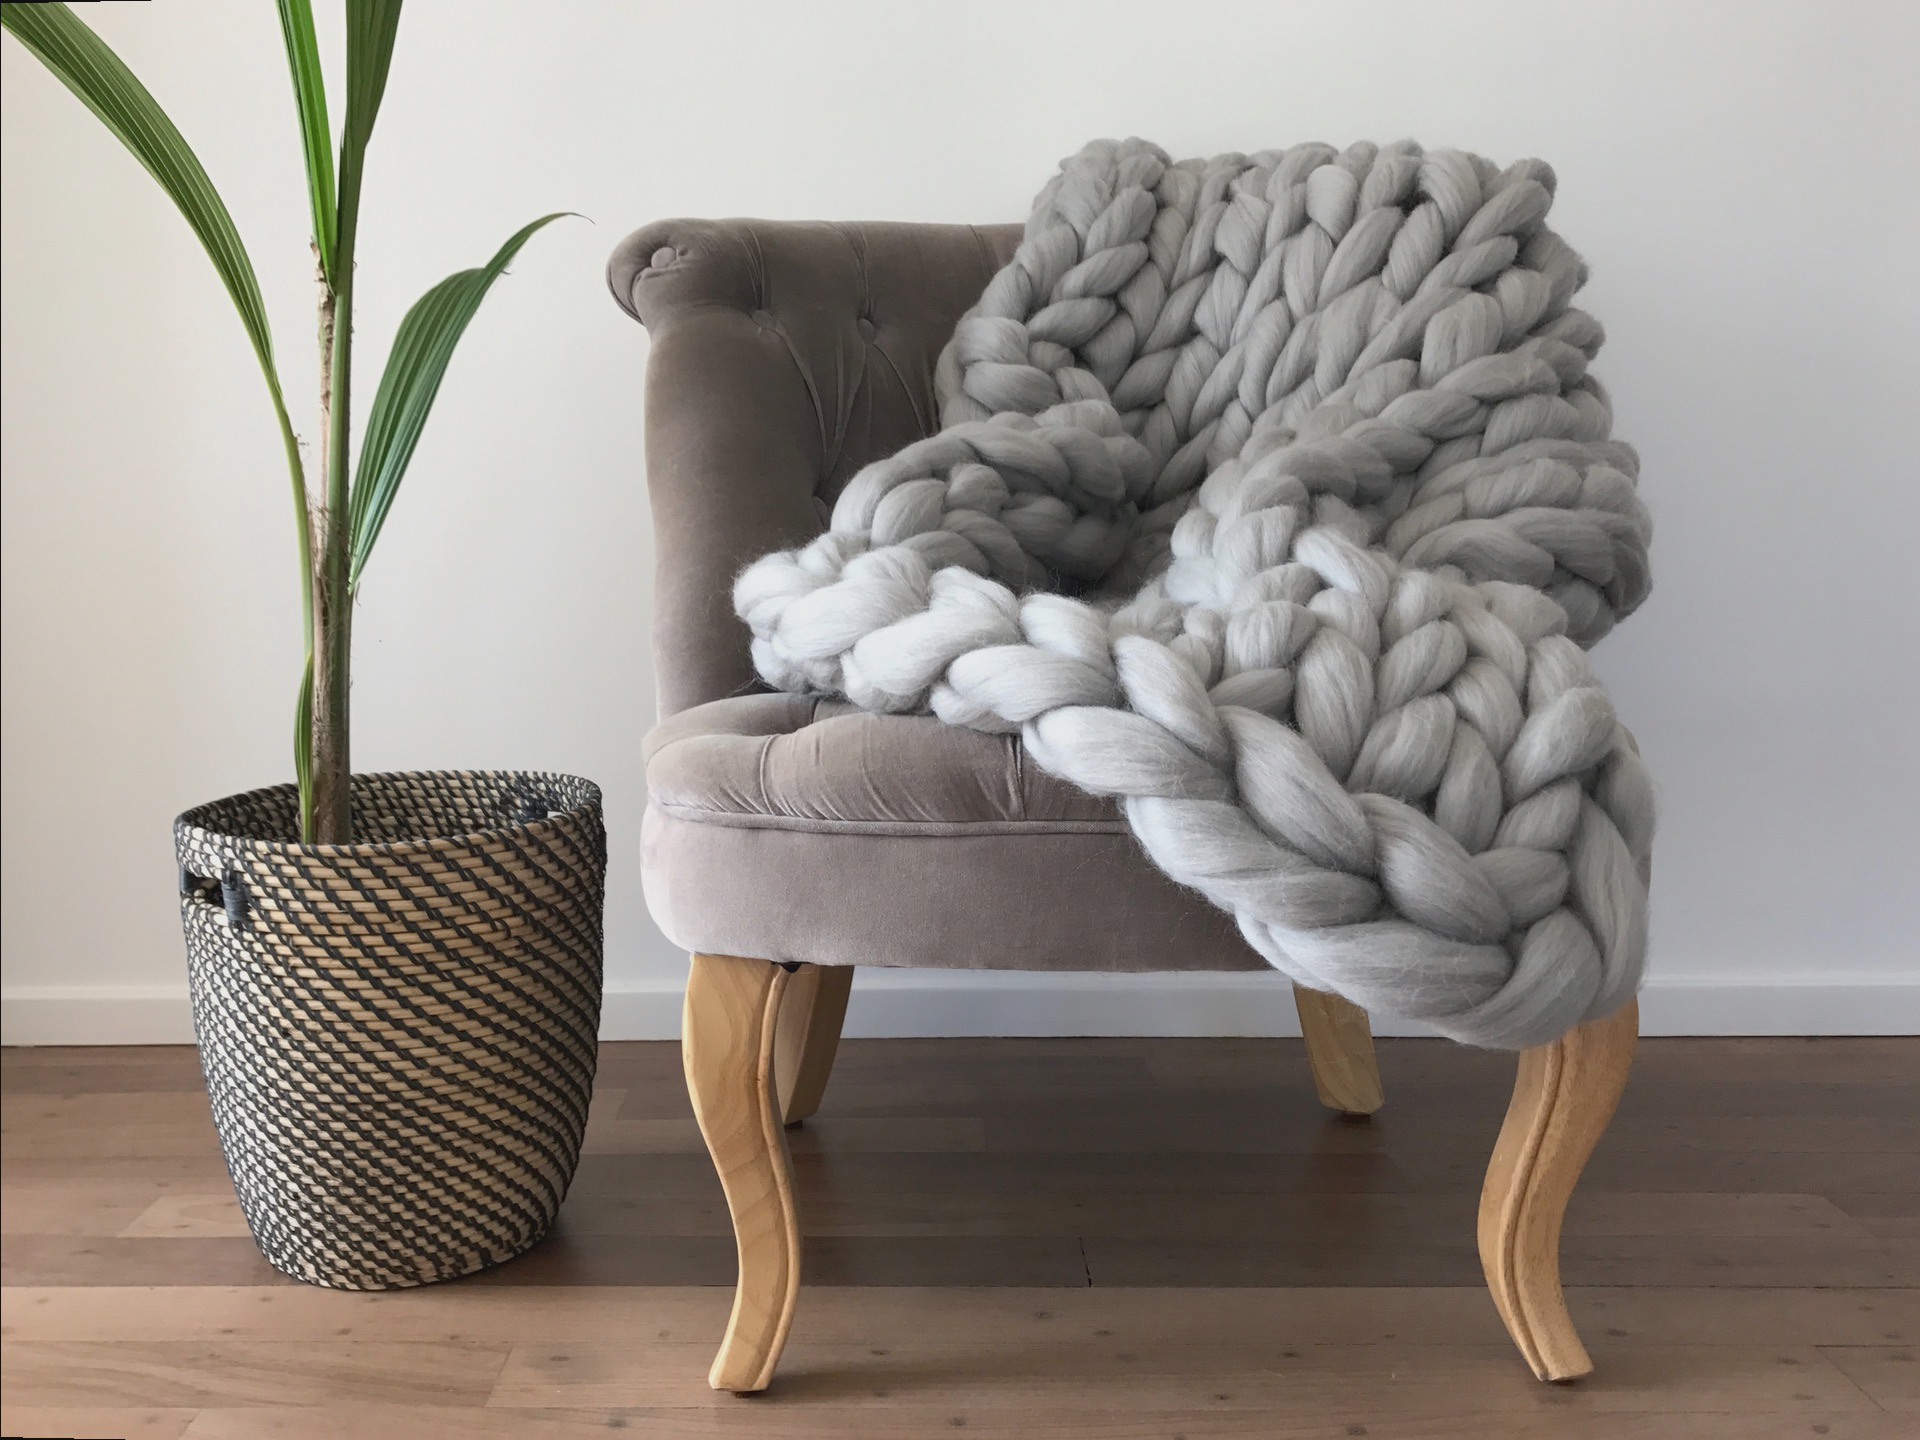 Super chunky grey merino blanket ComfyWool